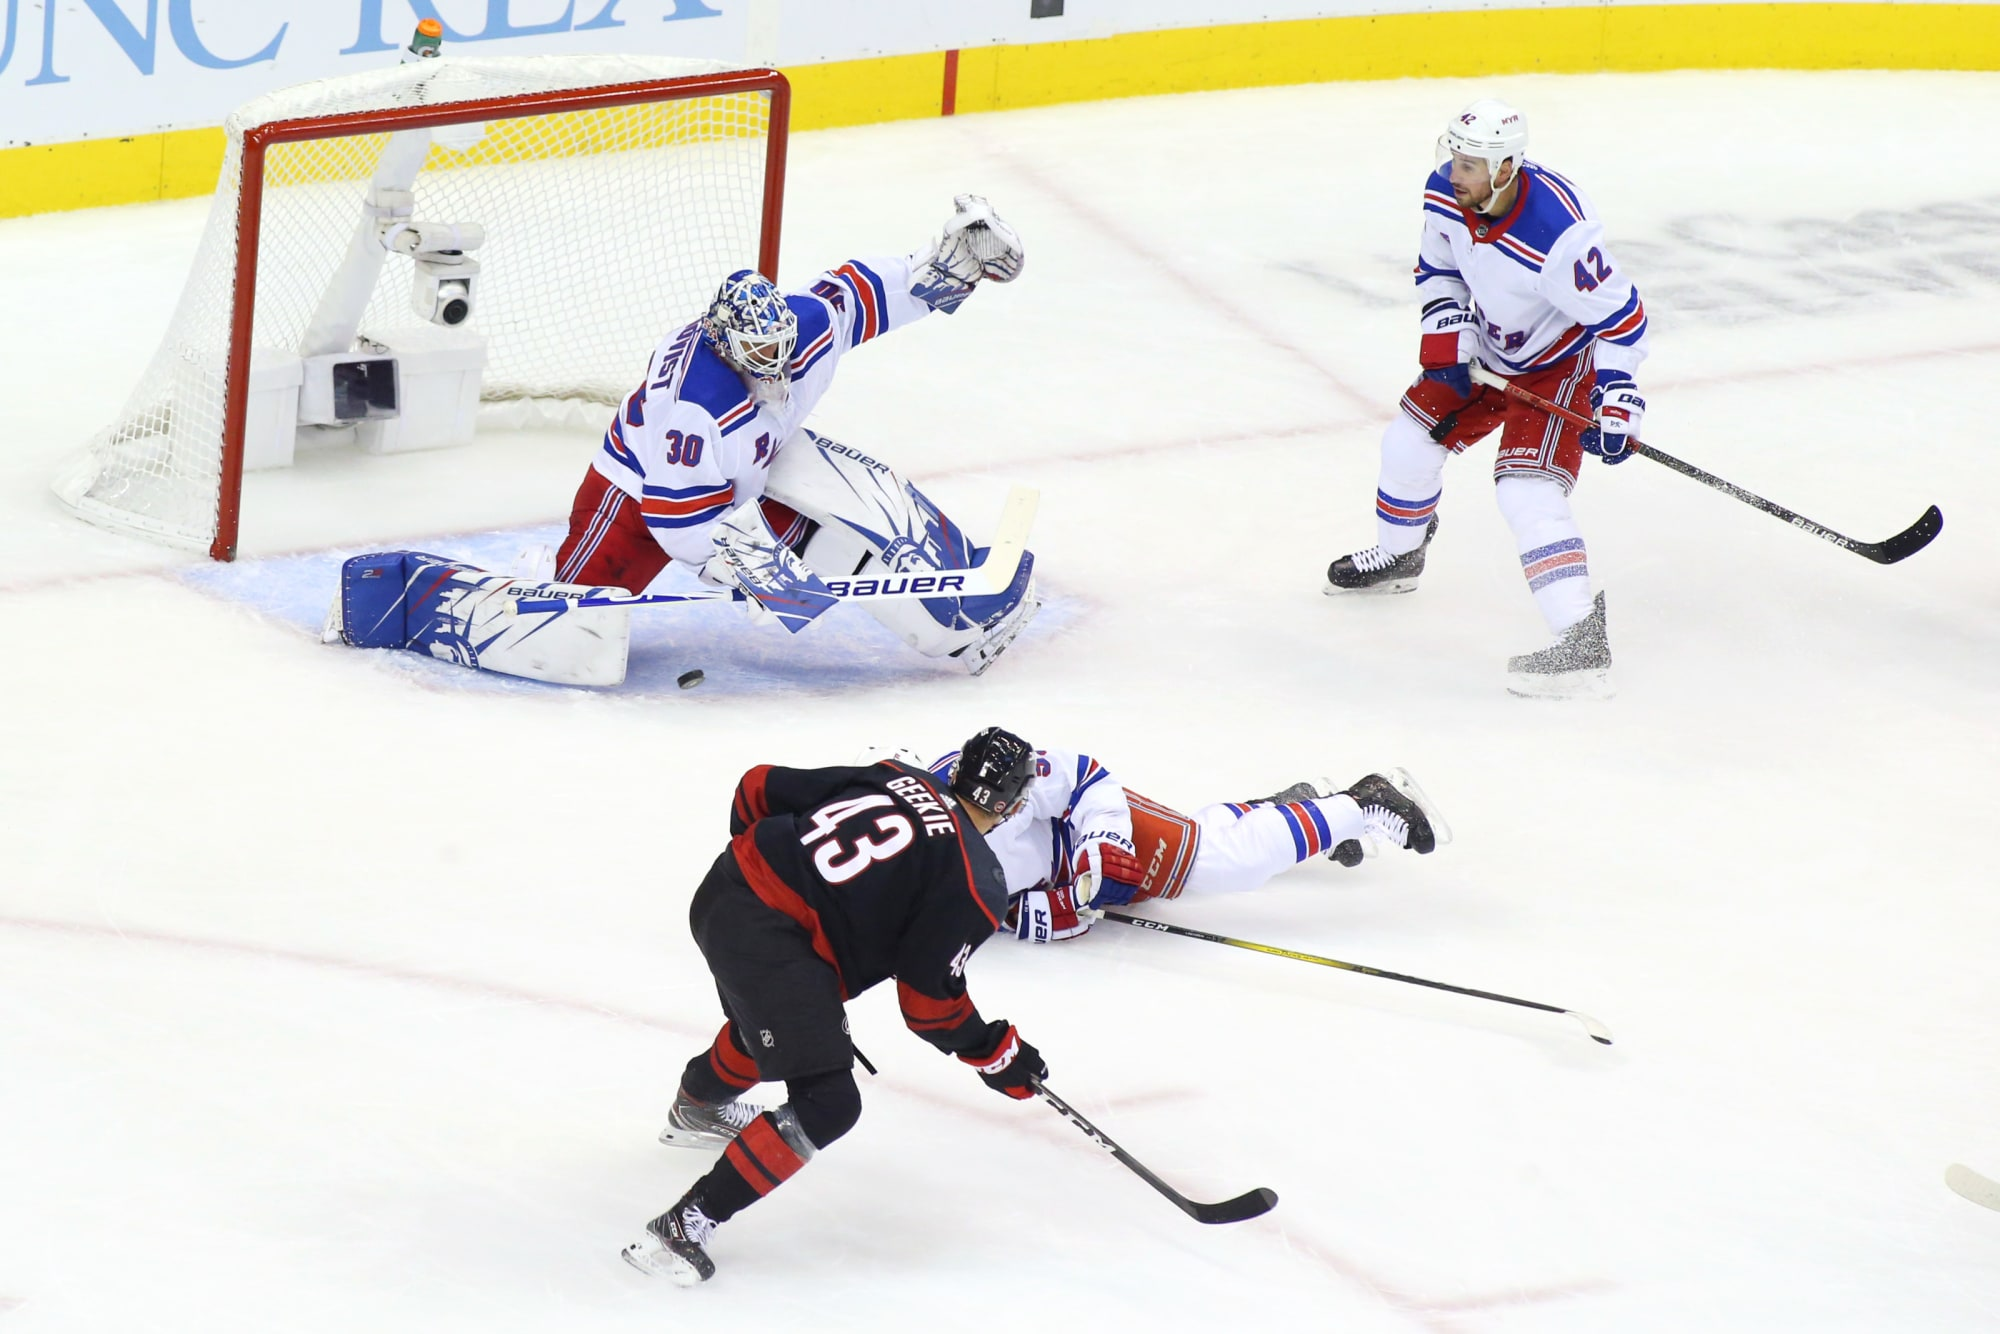 The Game 3 goalie decision is not such an easy call